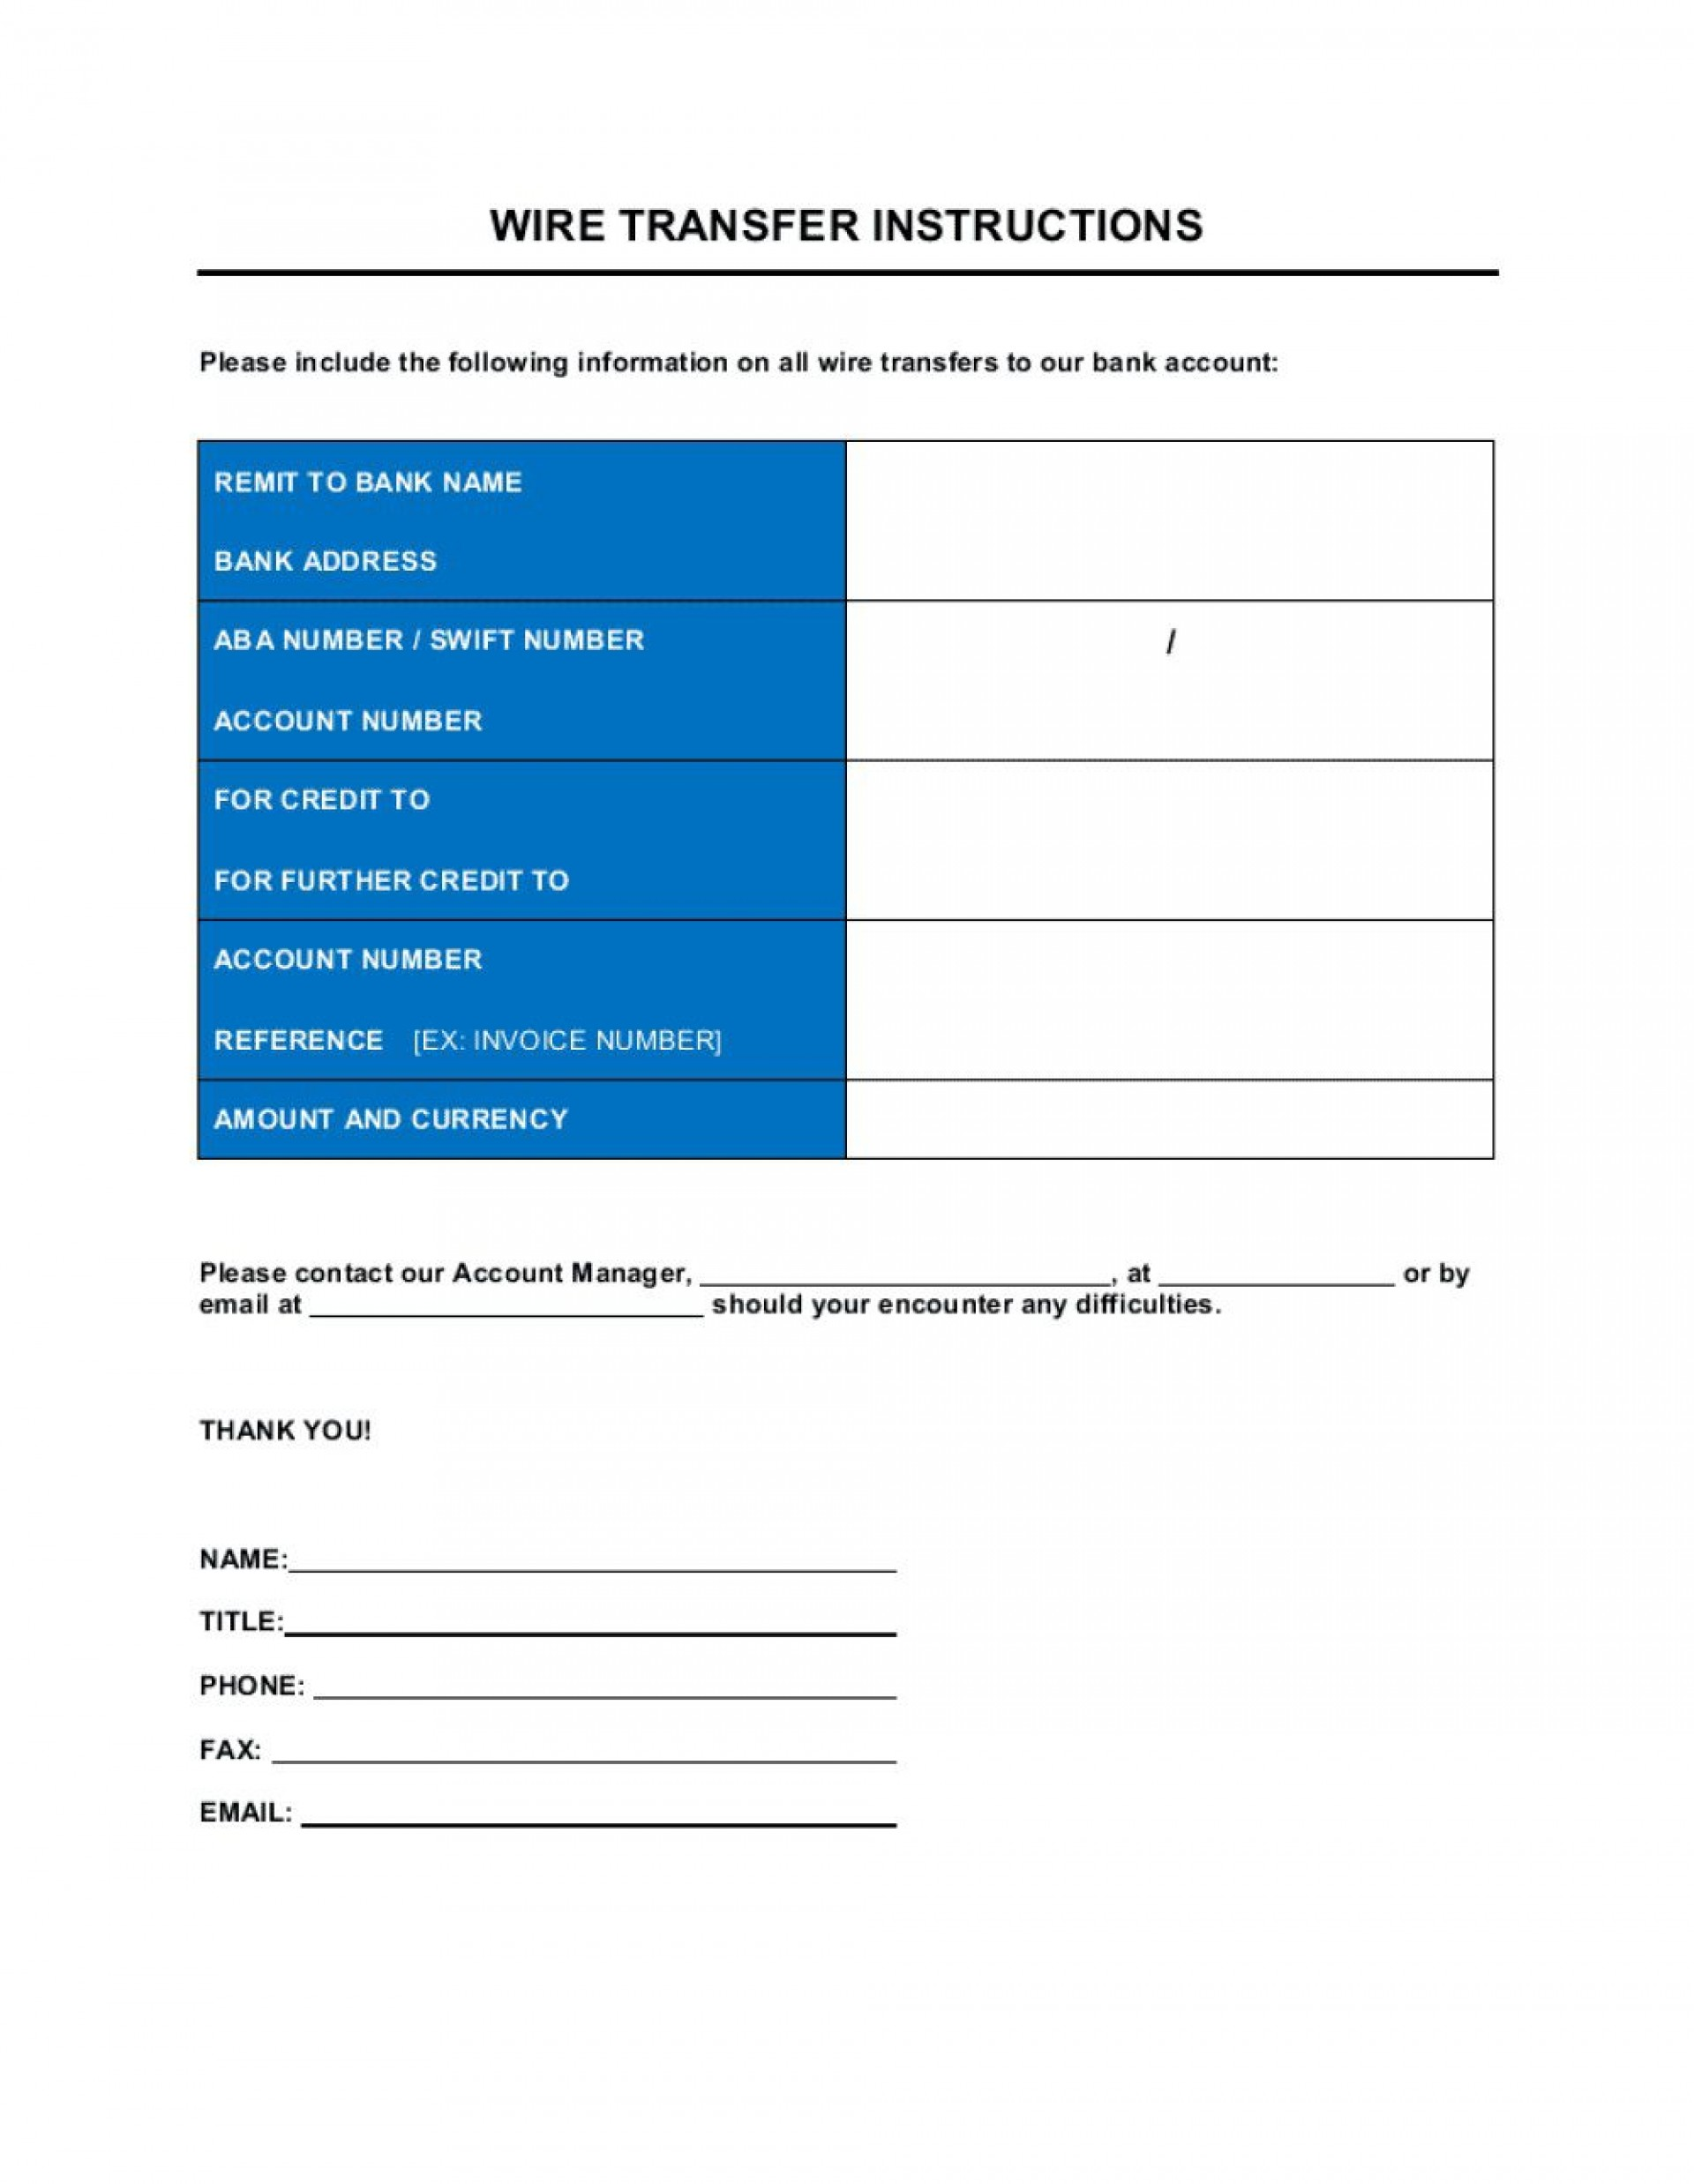 009 Staggering Wire Transfer Instruction Template Idea  Request Form Chase International1920